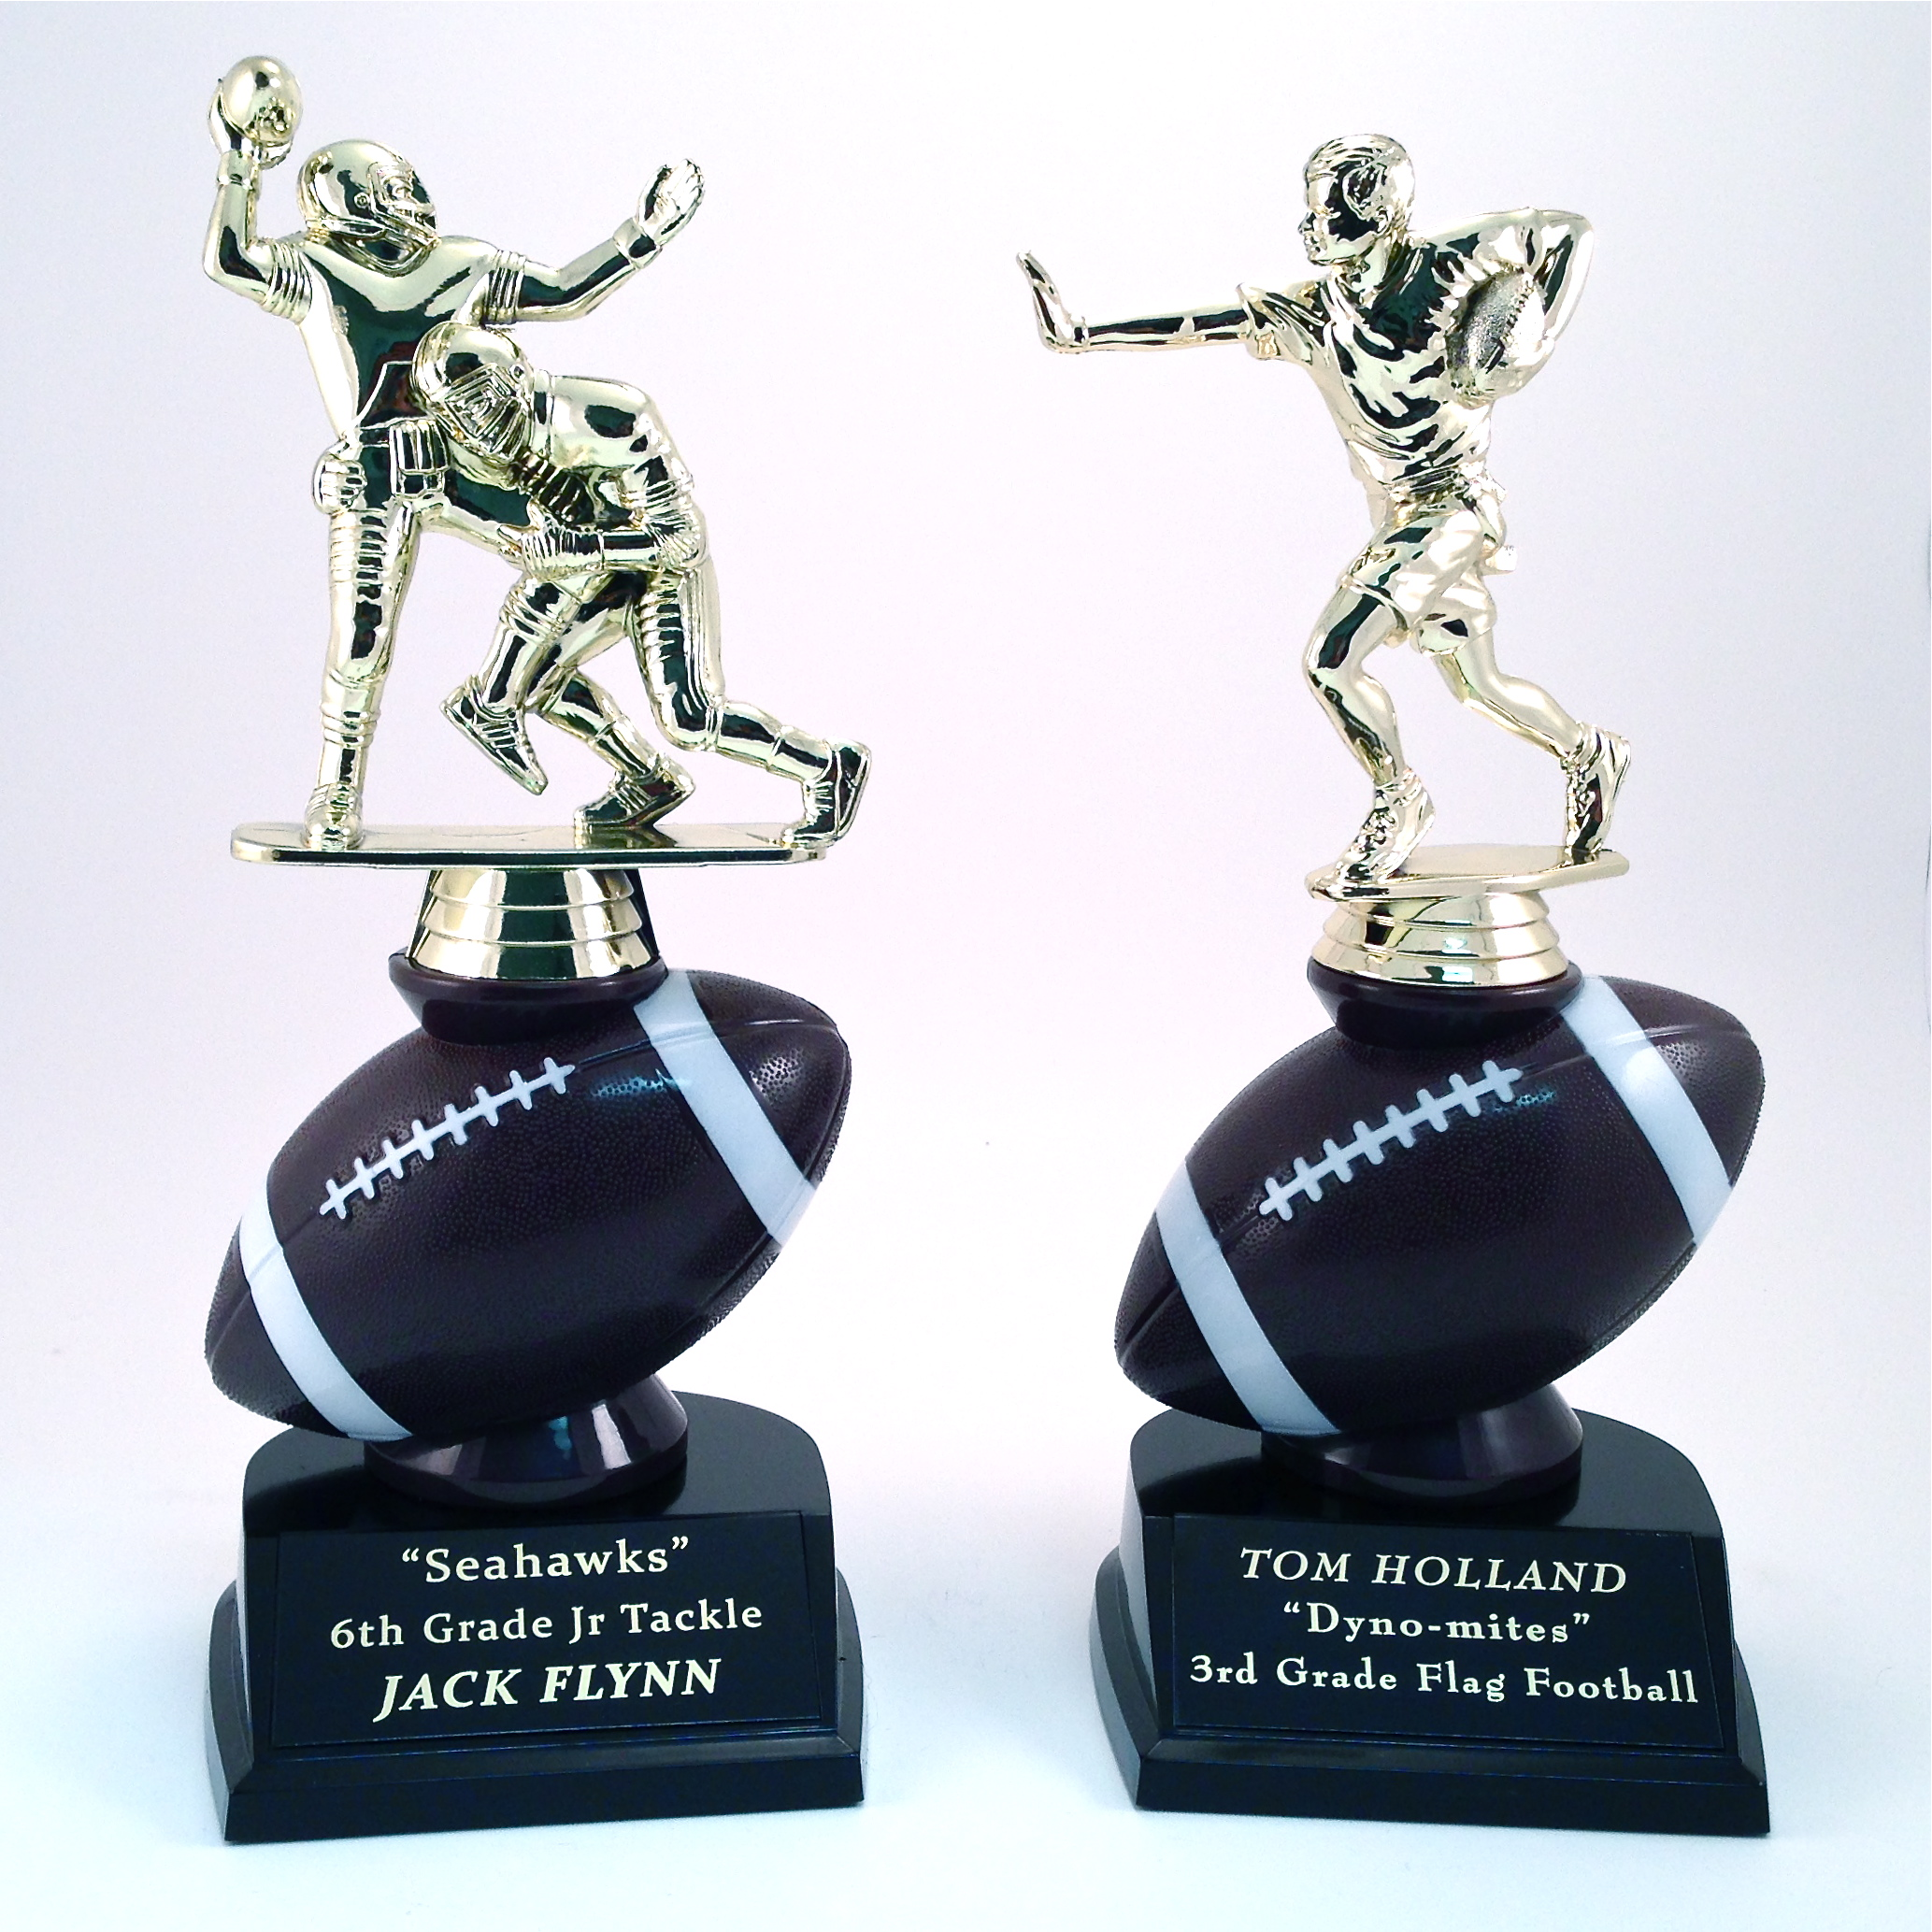 """Football Figures on a Football Riser. 9.5"""" Tall! Choose """"Stiff-Arm"""" or """"Tackle"""" Figures.$9.96 each (includes tax & engraving). [ITEM#:  16D ]"""